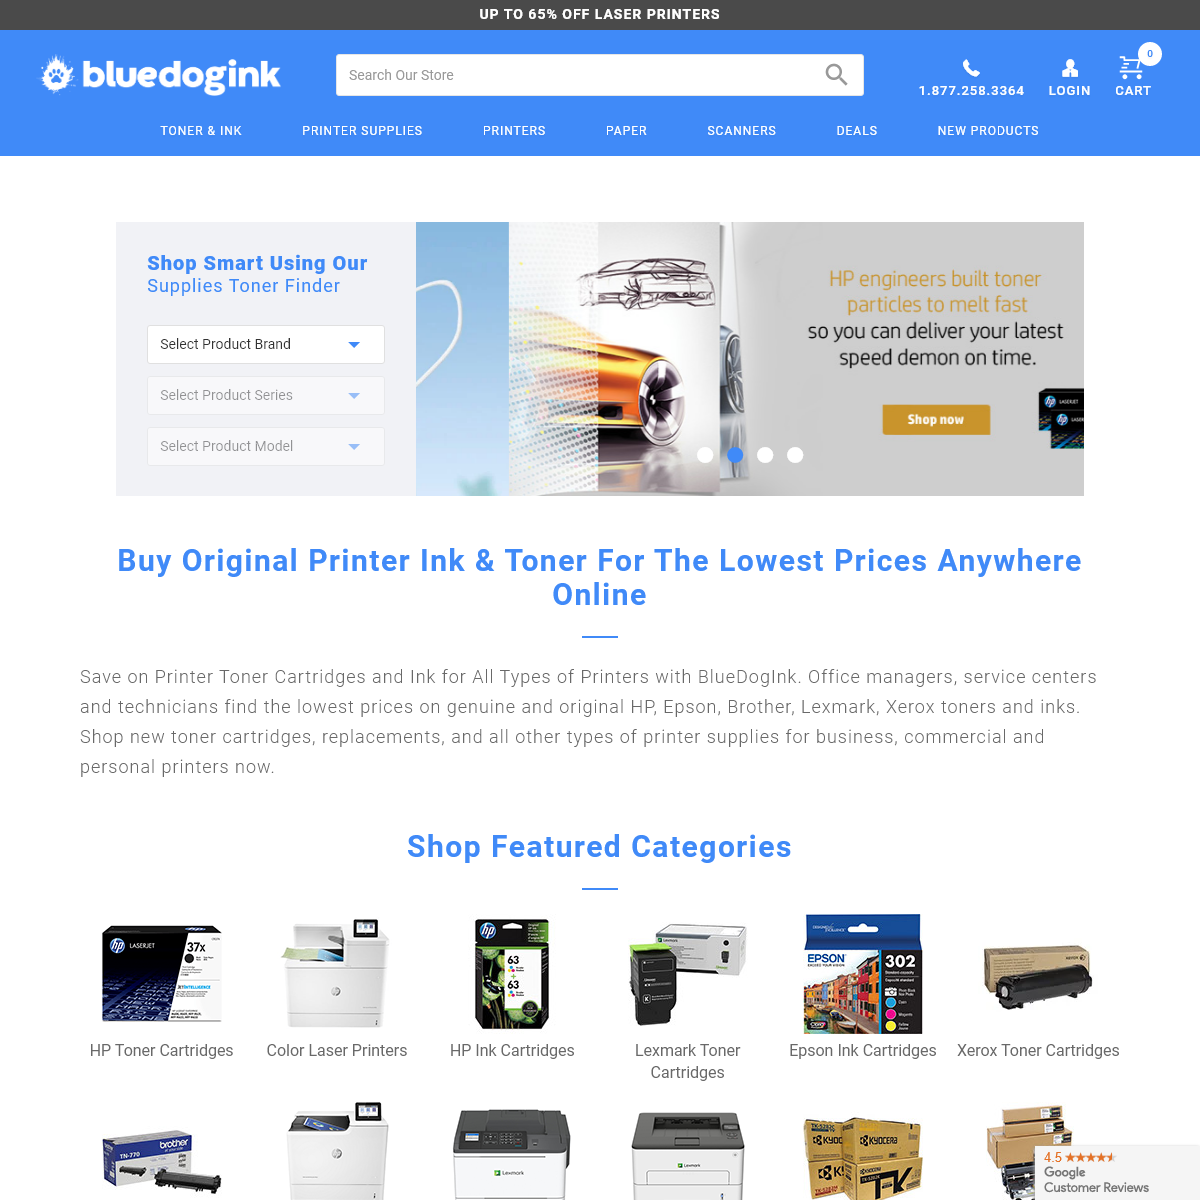 Original Printer Ink and Toner Cartridges - BlueDogInk.com